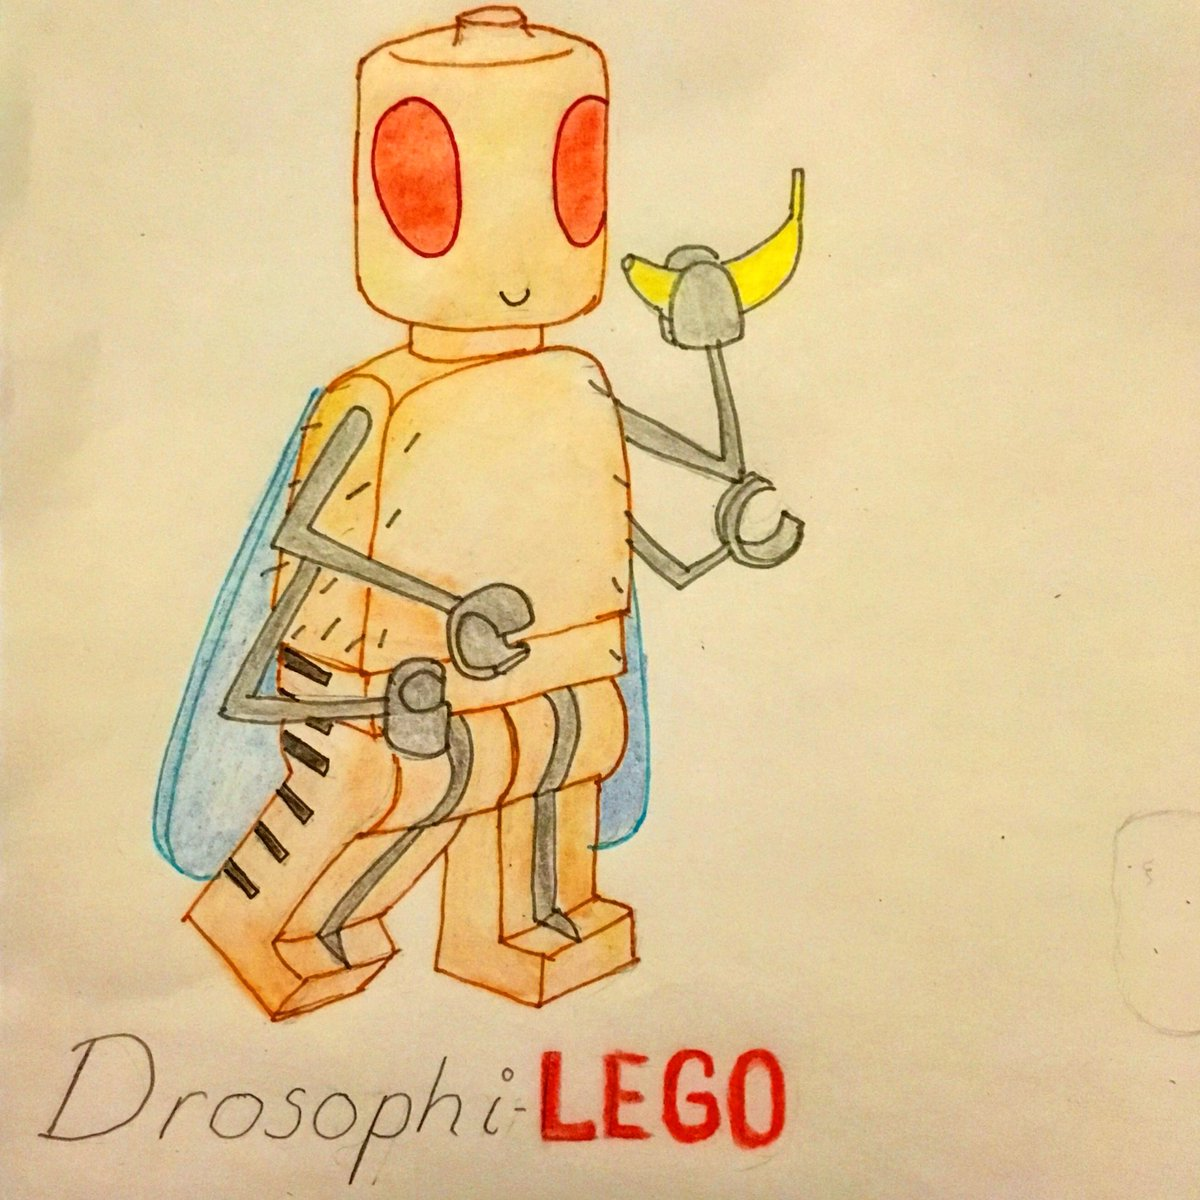 Please can someone invent Drosophila-Lego? #lego #drosophila #drosophilamelanogaster #fruitfly #fly #biology #science #legominifigures #legominifigs #phdstudent #phdlife #scienceisfun #insects #inventions #please #iwant #iwantthis #studentlife <br>http://pic.twitter.com/GS9pbMyVGk